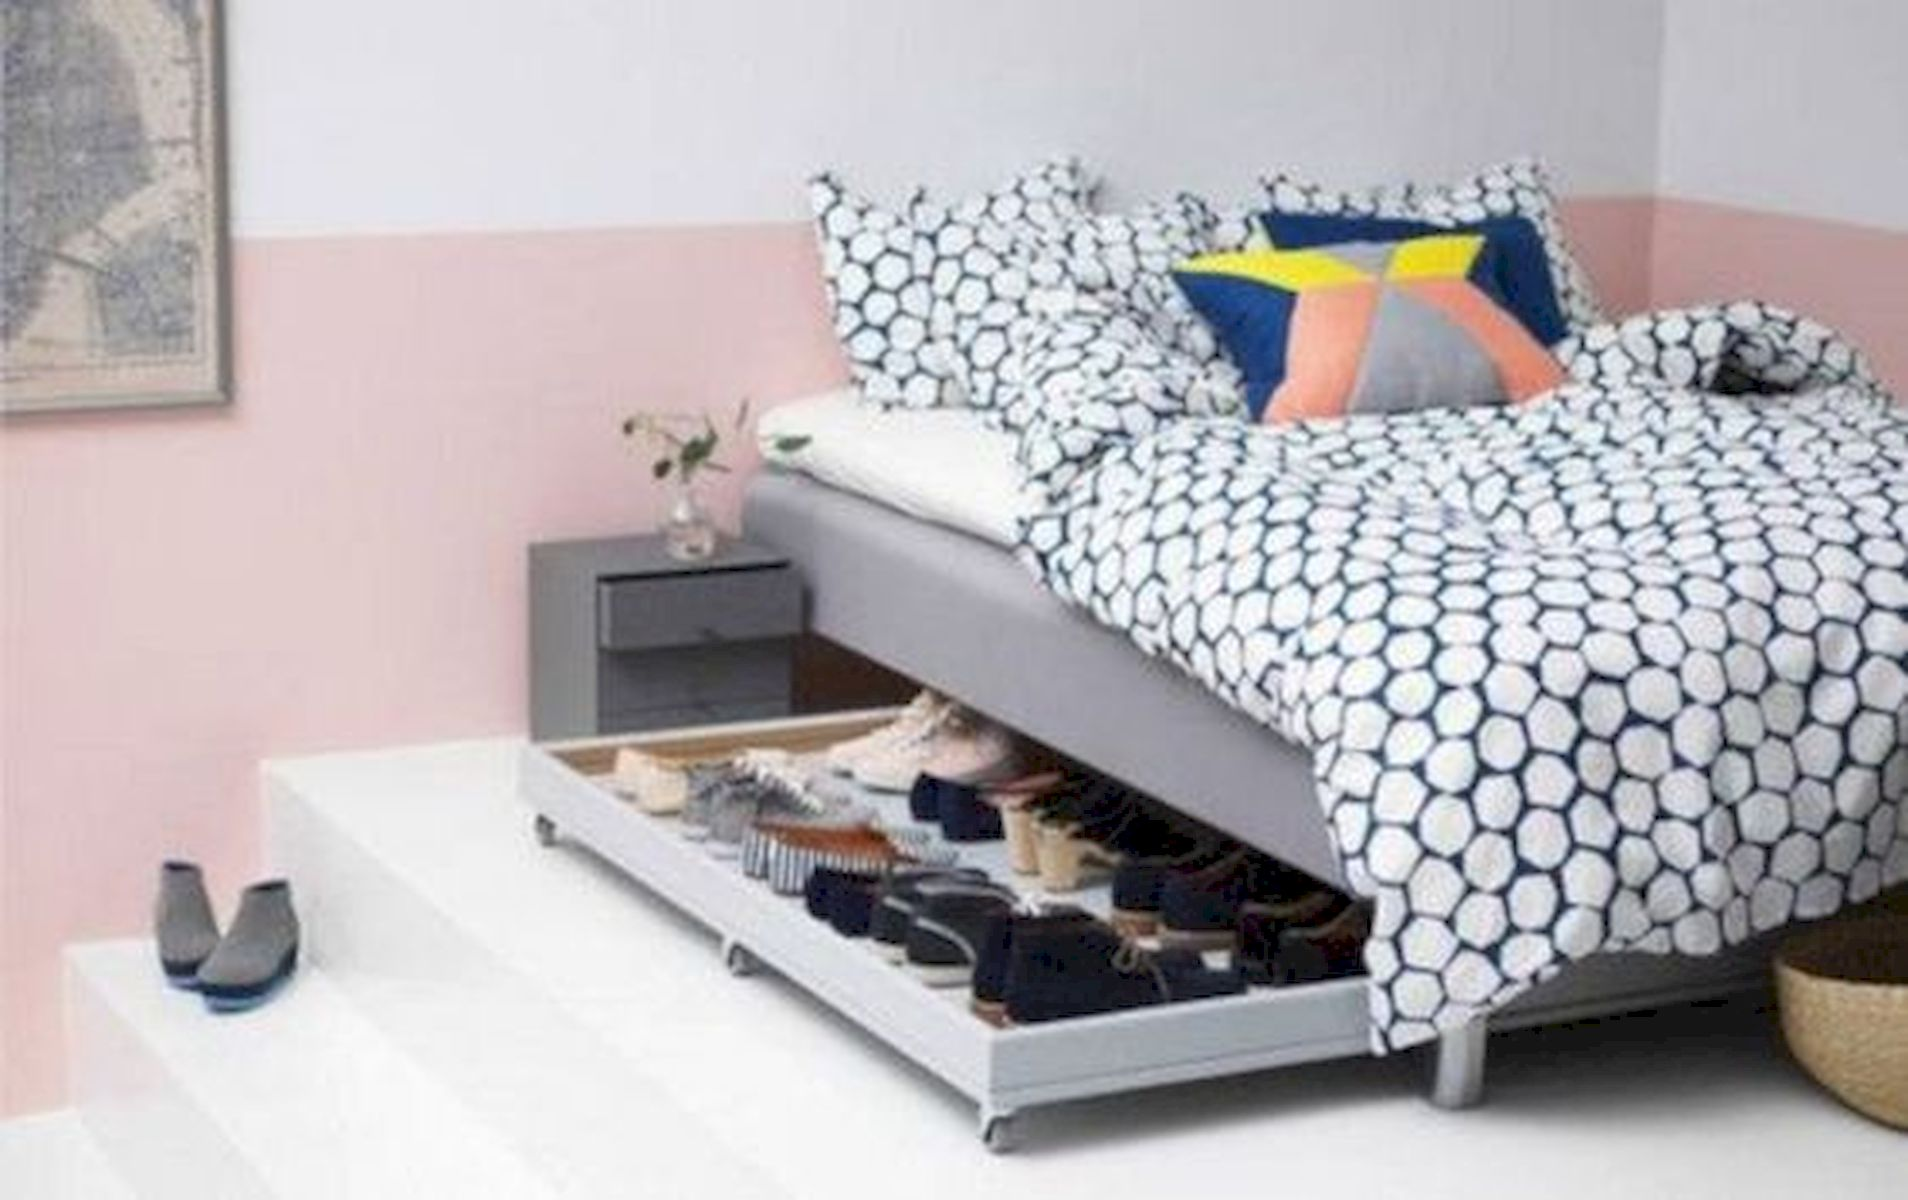 60 Brilliant Space Saving Ideas For Small Bedroom (53)